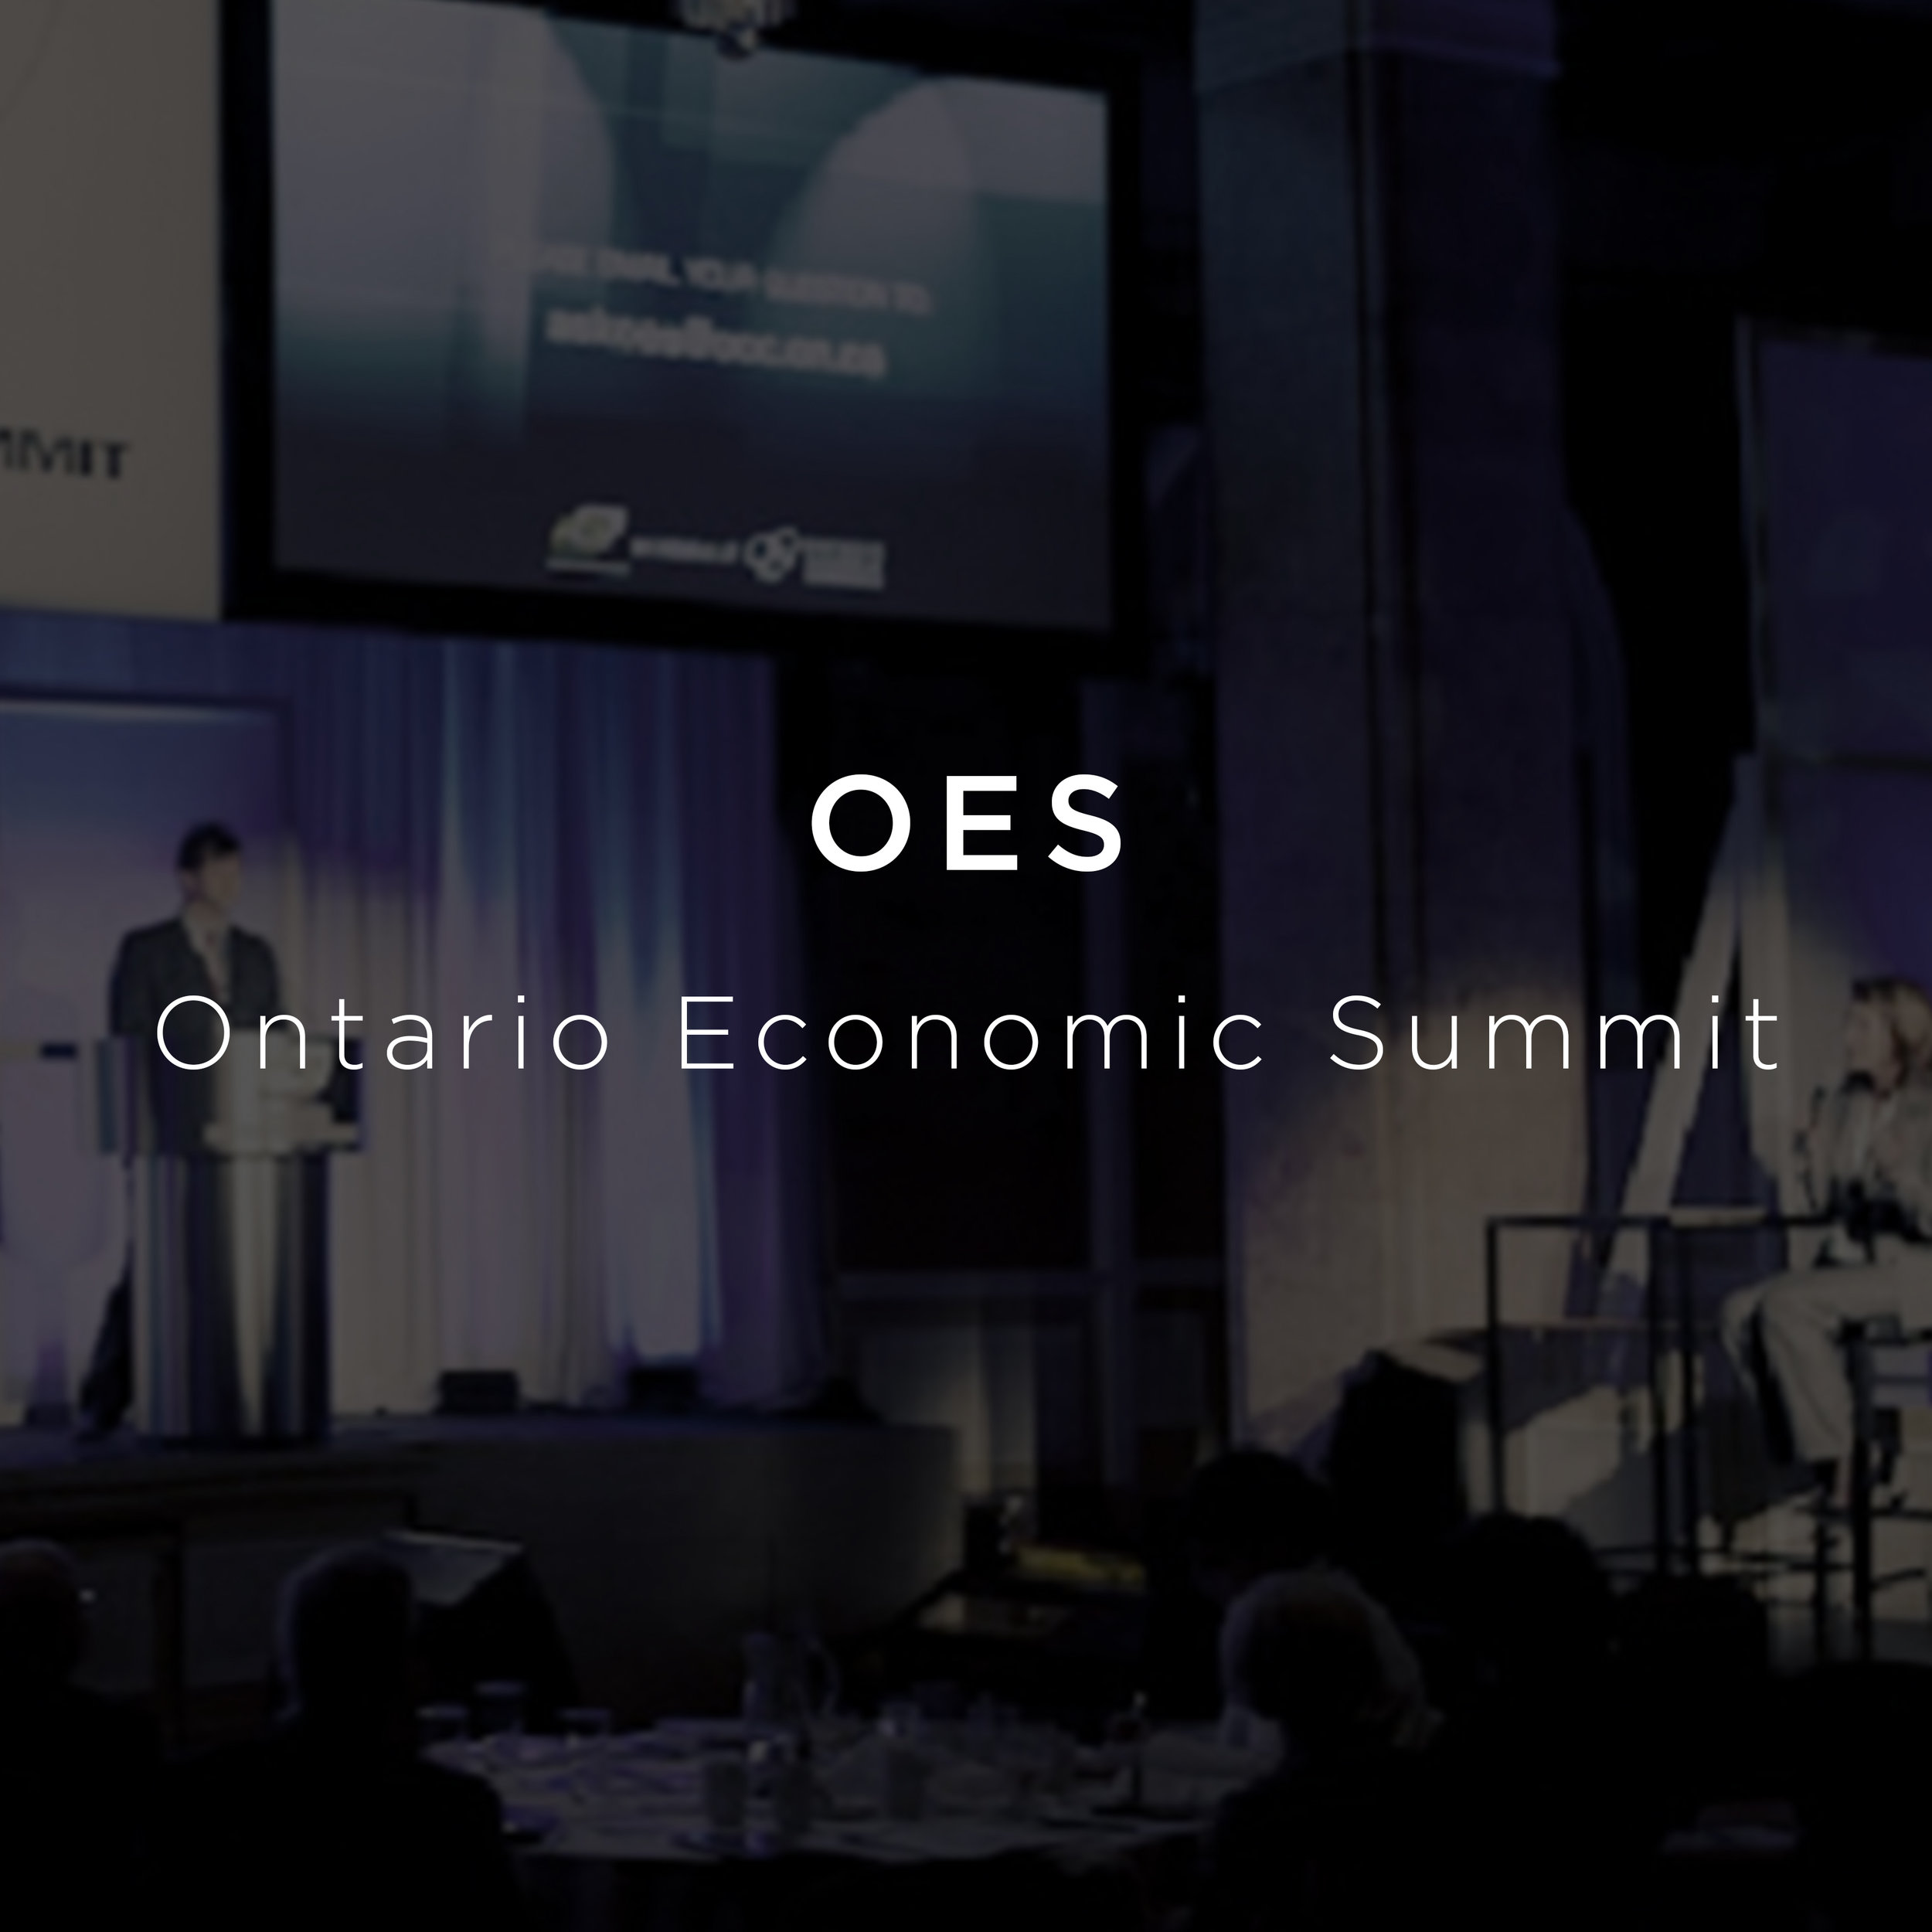 PROJECTS-oes.jpg